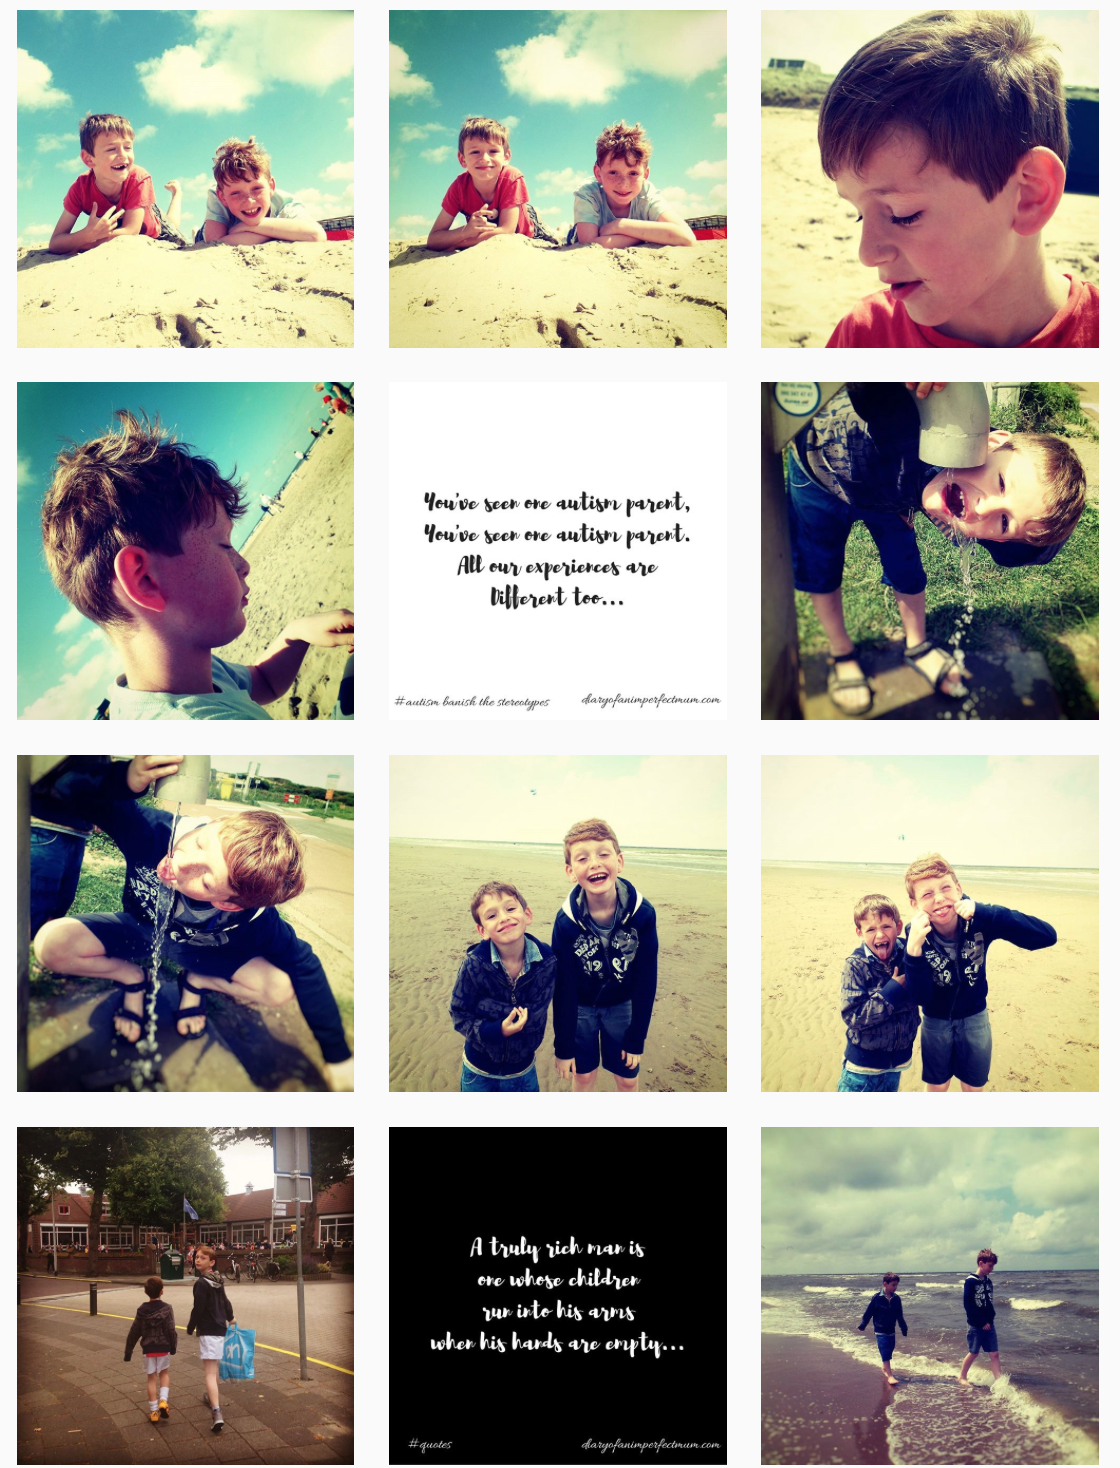 photo montage of our week. Boys playing at the beach